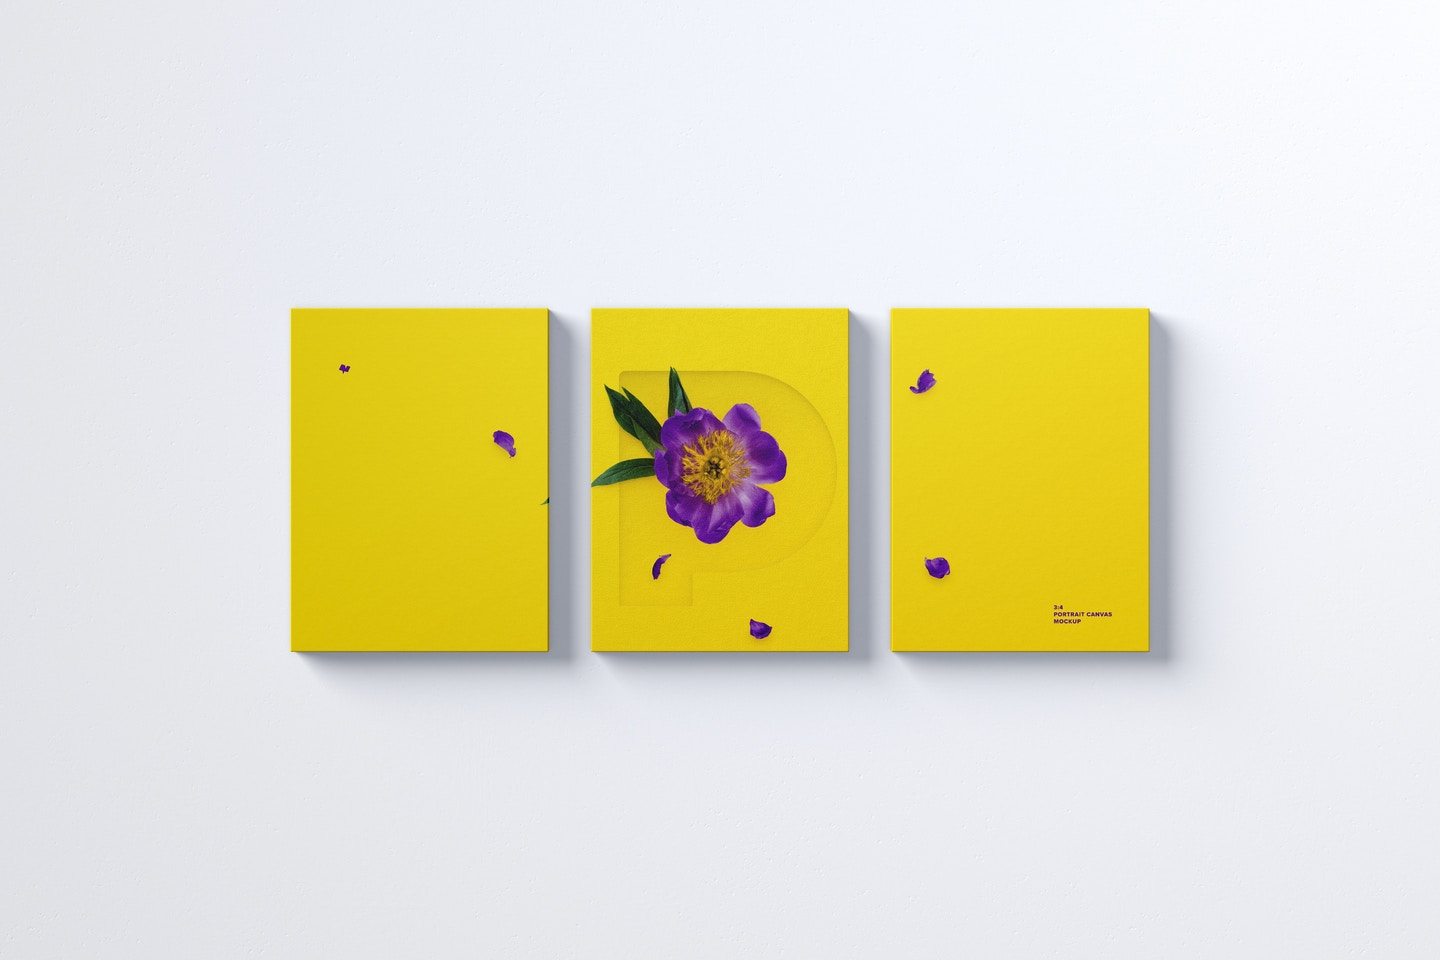 Three 3:4 Portrait Canvas Mockup Hanging on Wall, Front View